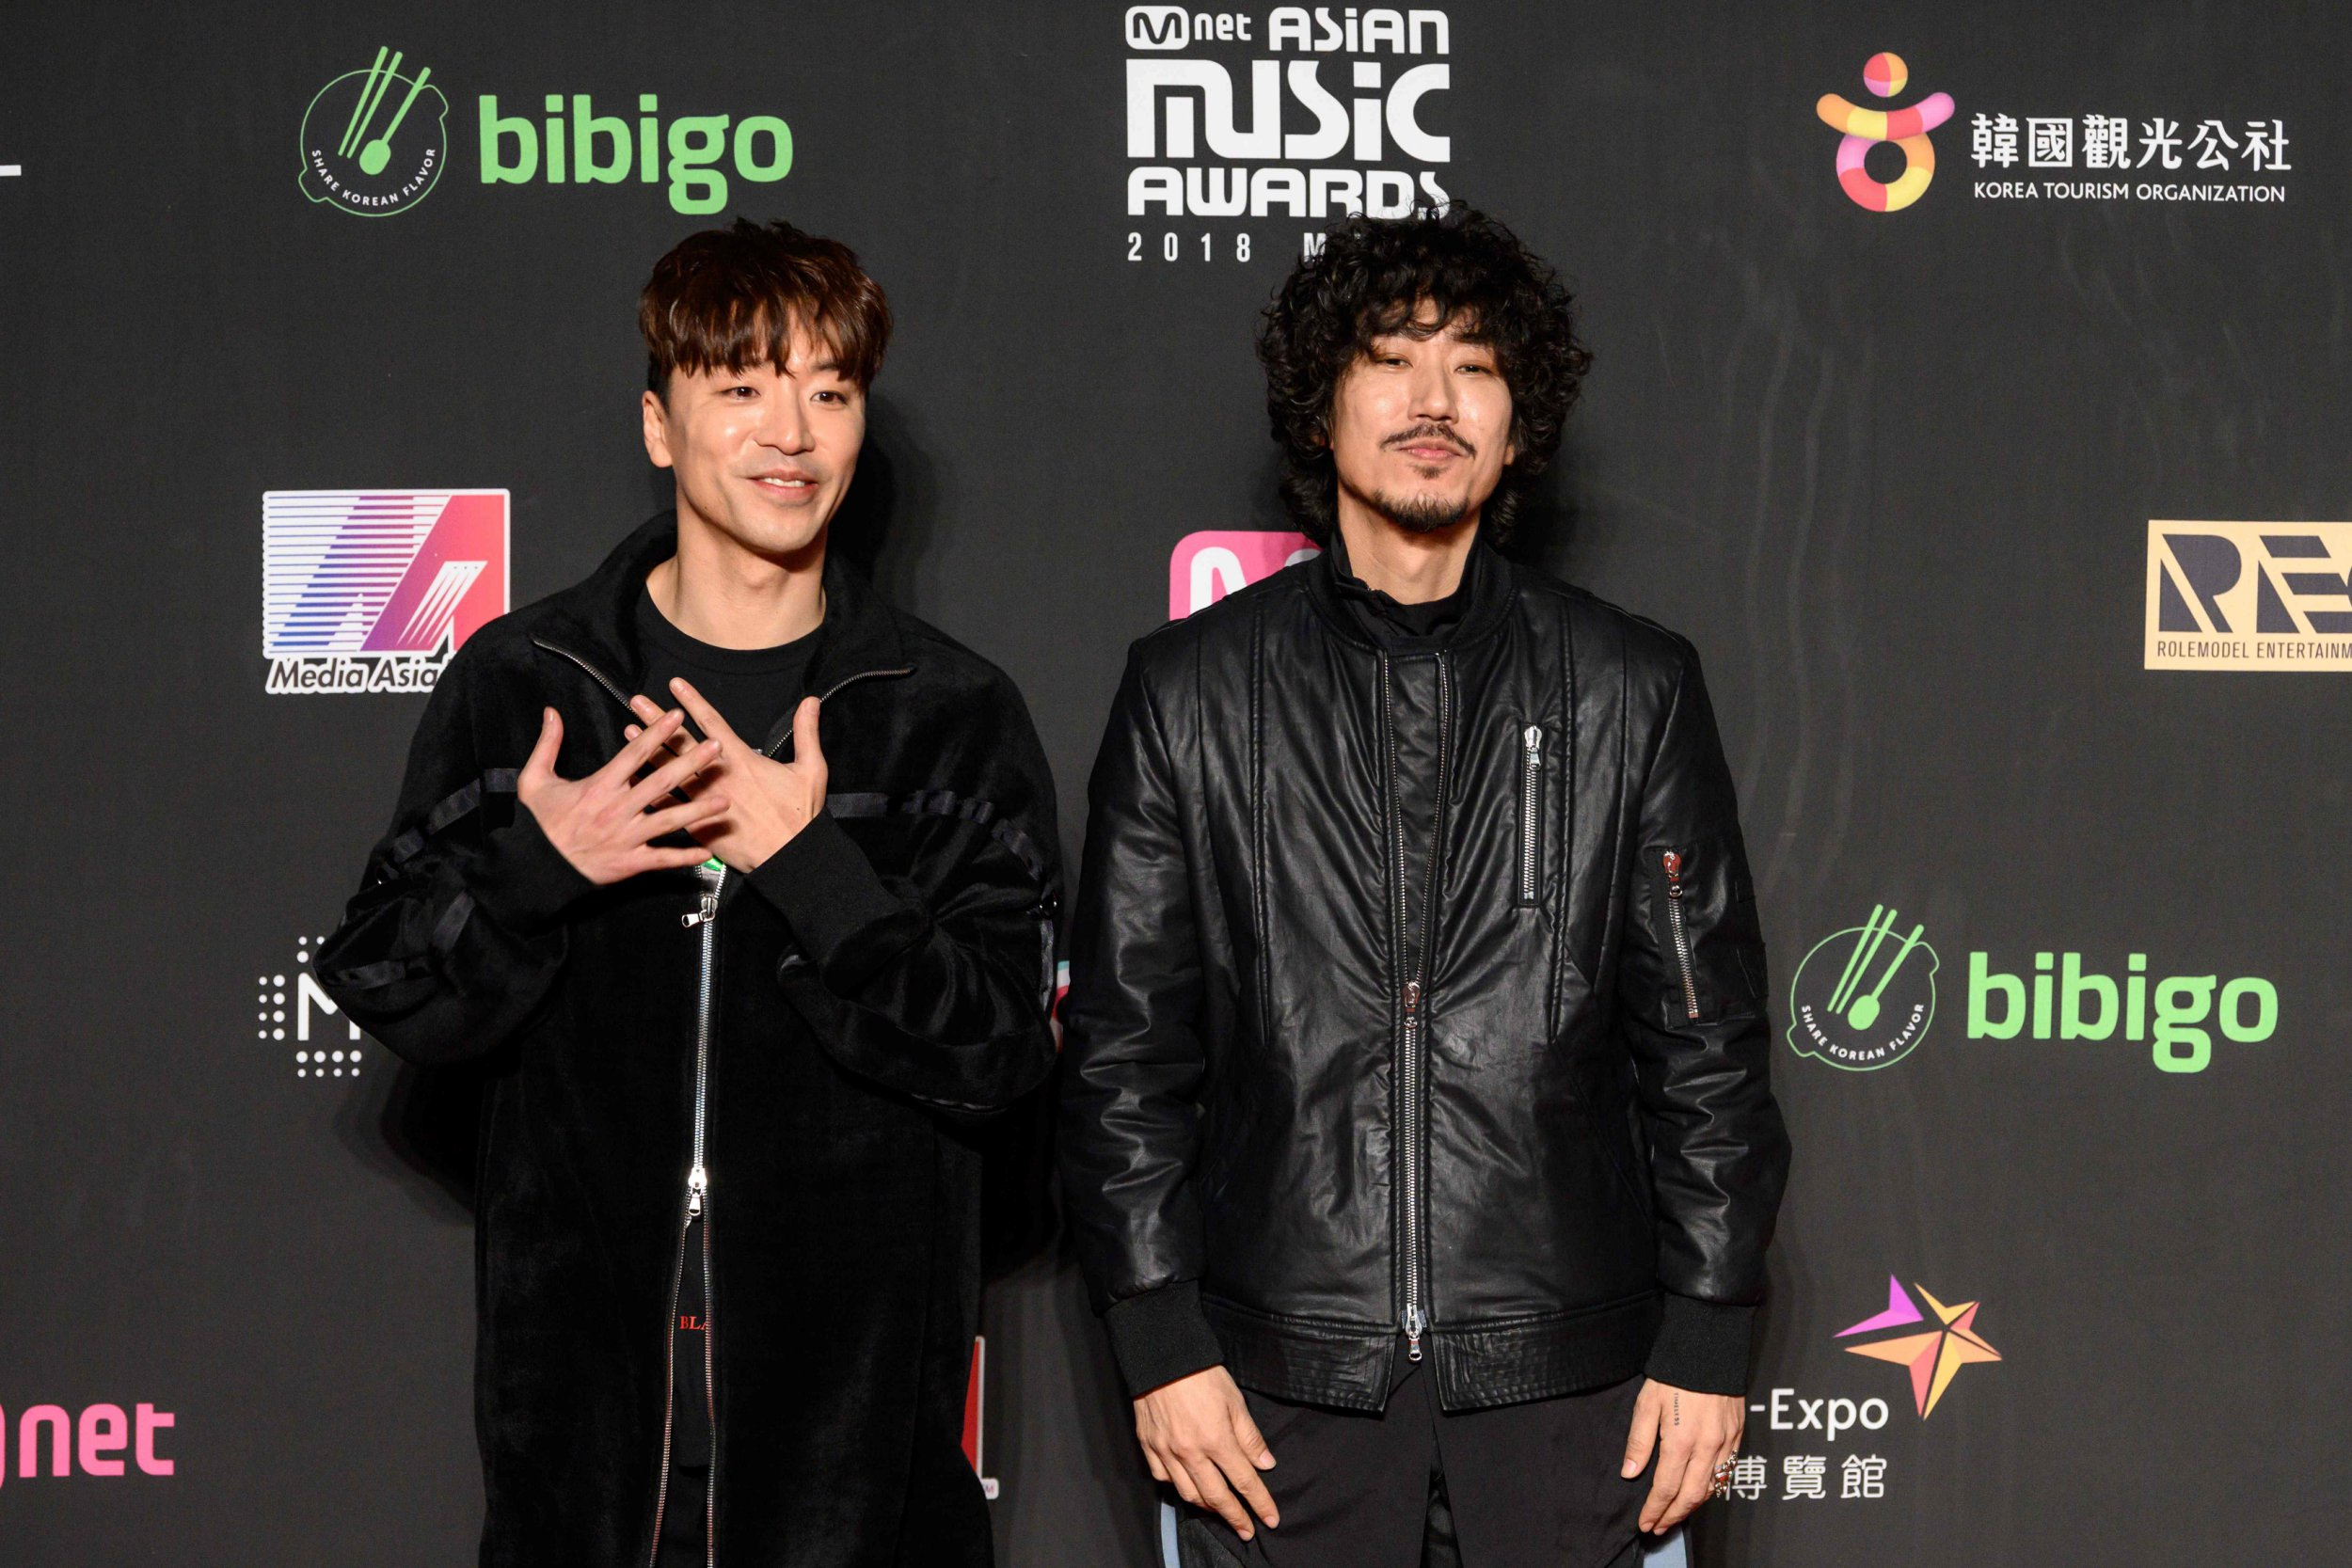 South Korean singers Bizzy (L) and Tiger JK pose on the red carpet at the Mnet Asian Music Awards (MAMA) in Hong Kong on December 14, 2018. (Photo by Anthony WALLACE / AFP)ANTHONY WALLACE/AFP/Getty Images